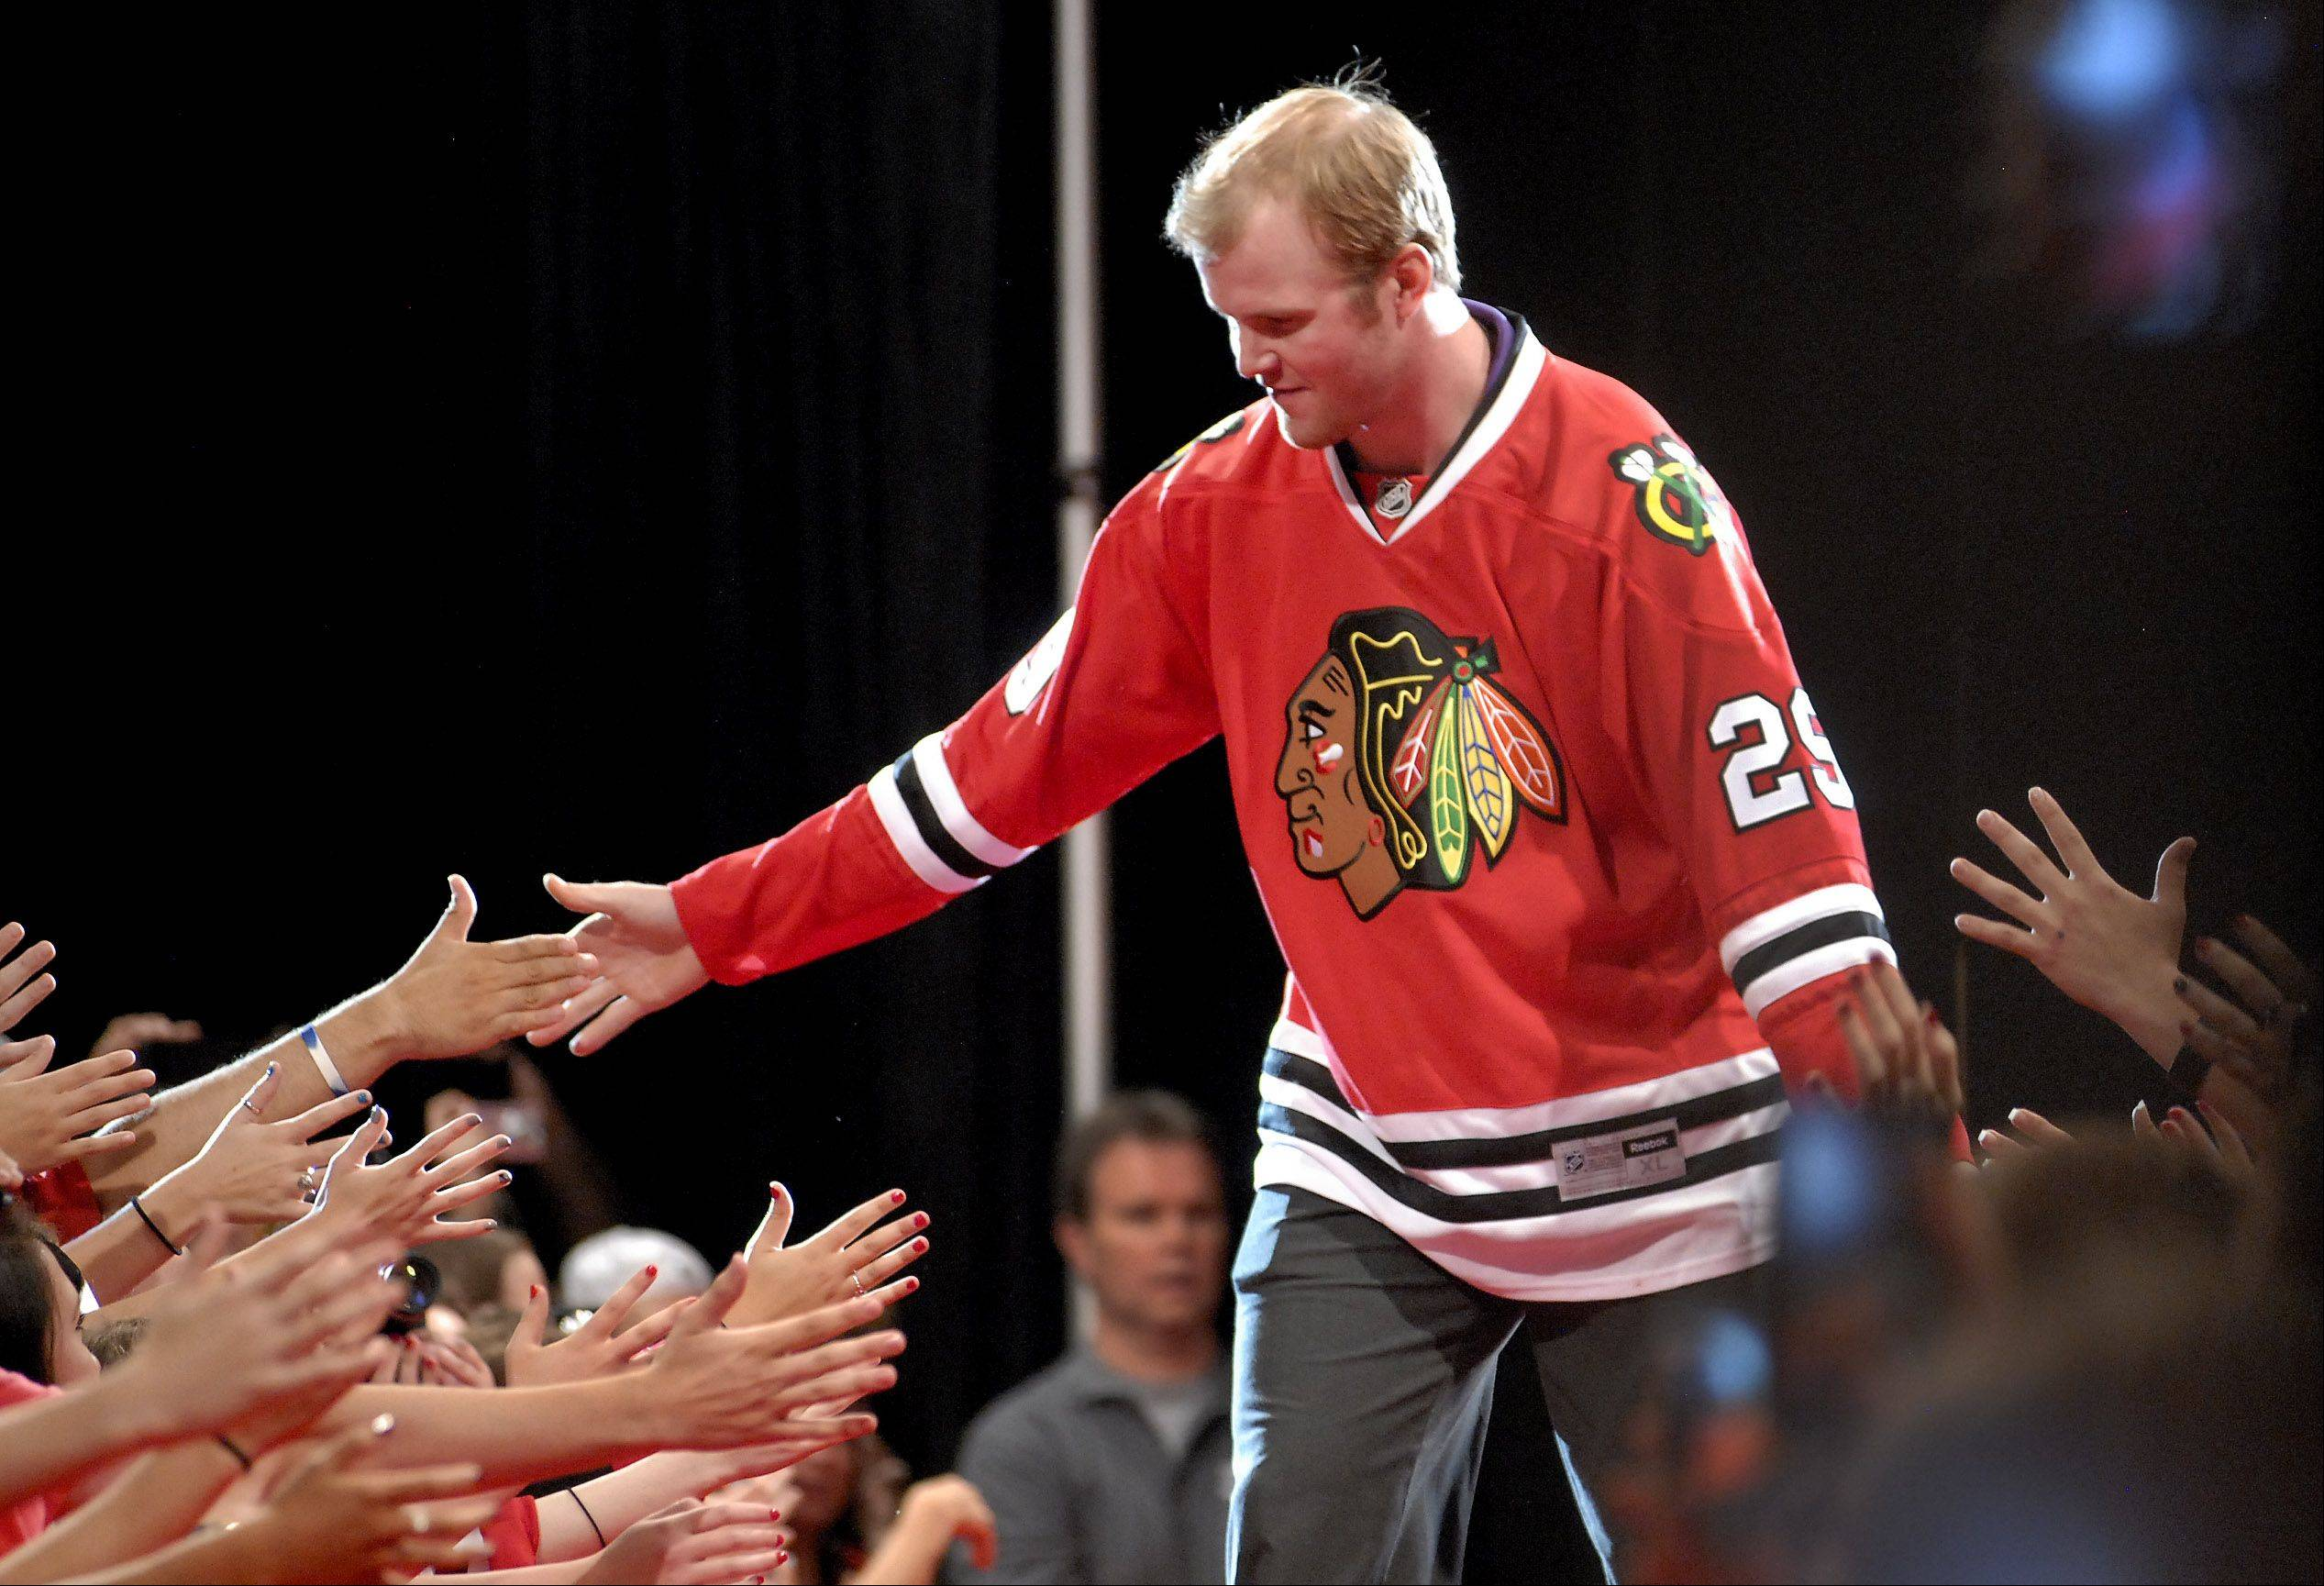 Bob Chwedyk/bchwedyk@dailyherald.comHawks fans loved what they say from Bryan Bickell in the playoffs. After years of coming to camp bidding for a third-line or fourth-line spot, Bickell will start with Jonathan Toews and Patrick Kane on the first line.